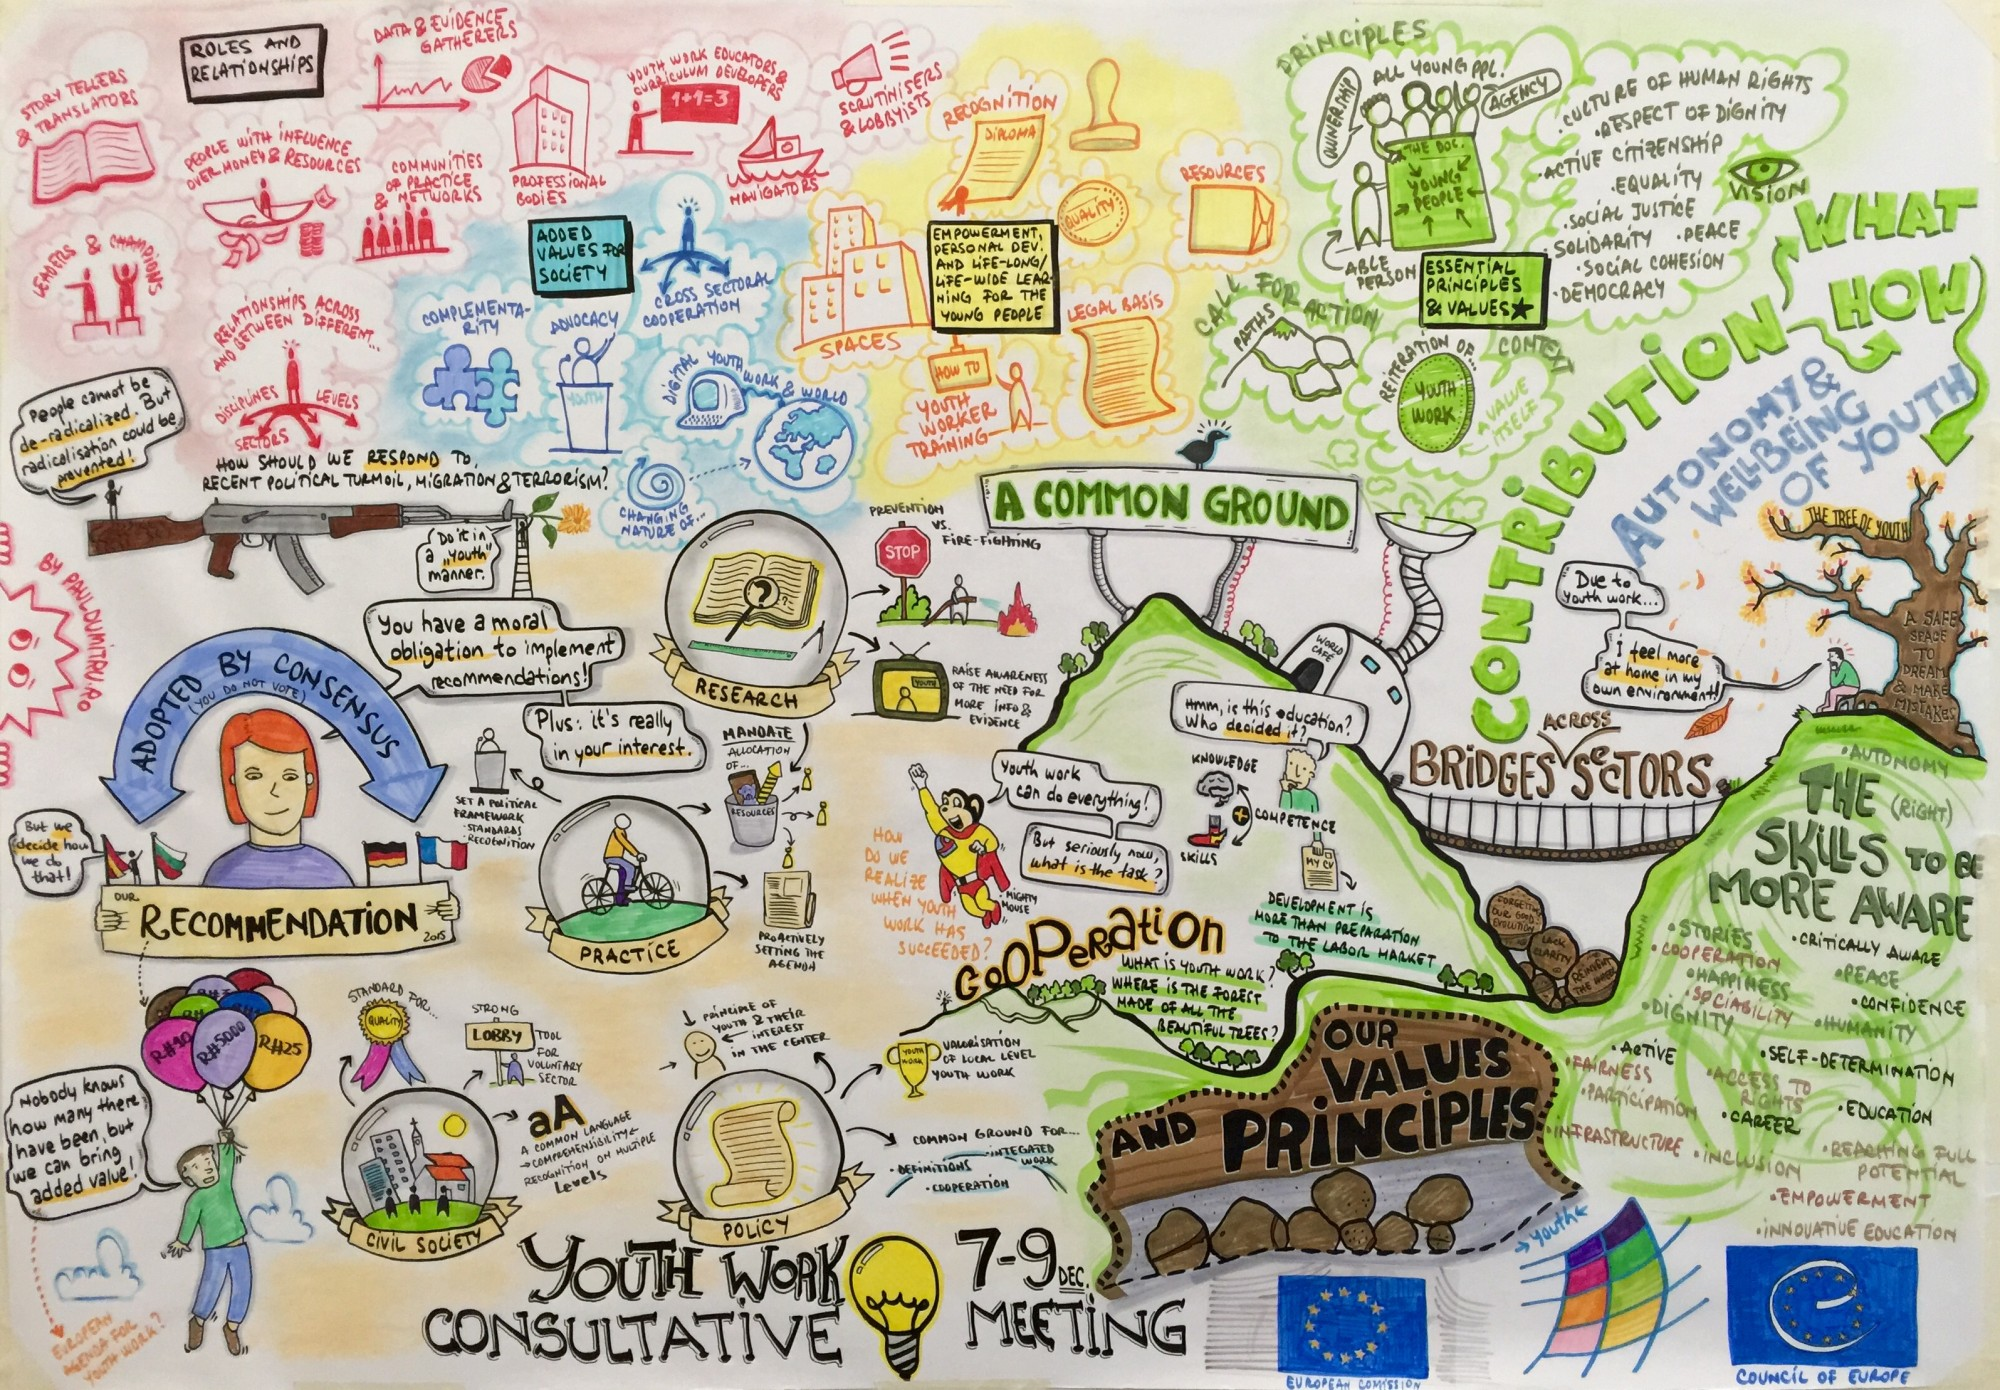 consultative-meeting-graphic-recording-strasbourg-2015-paul-dumitru